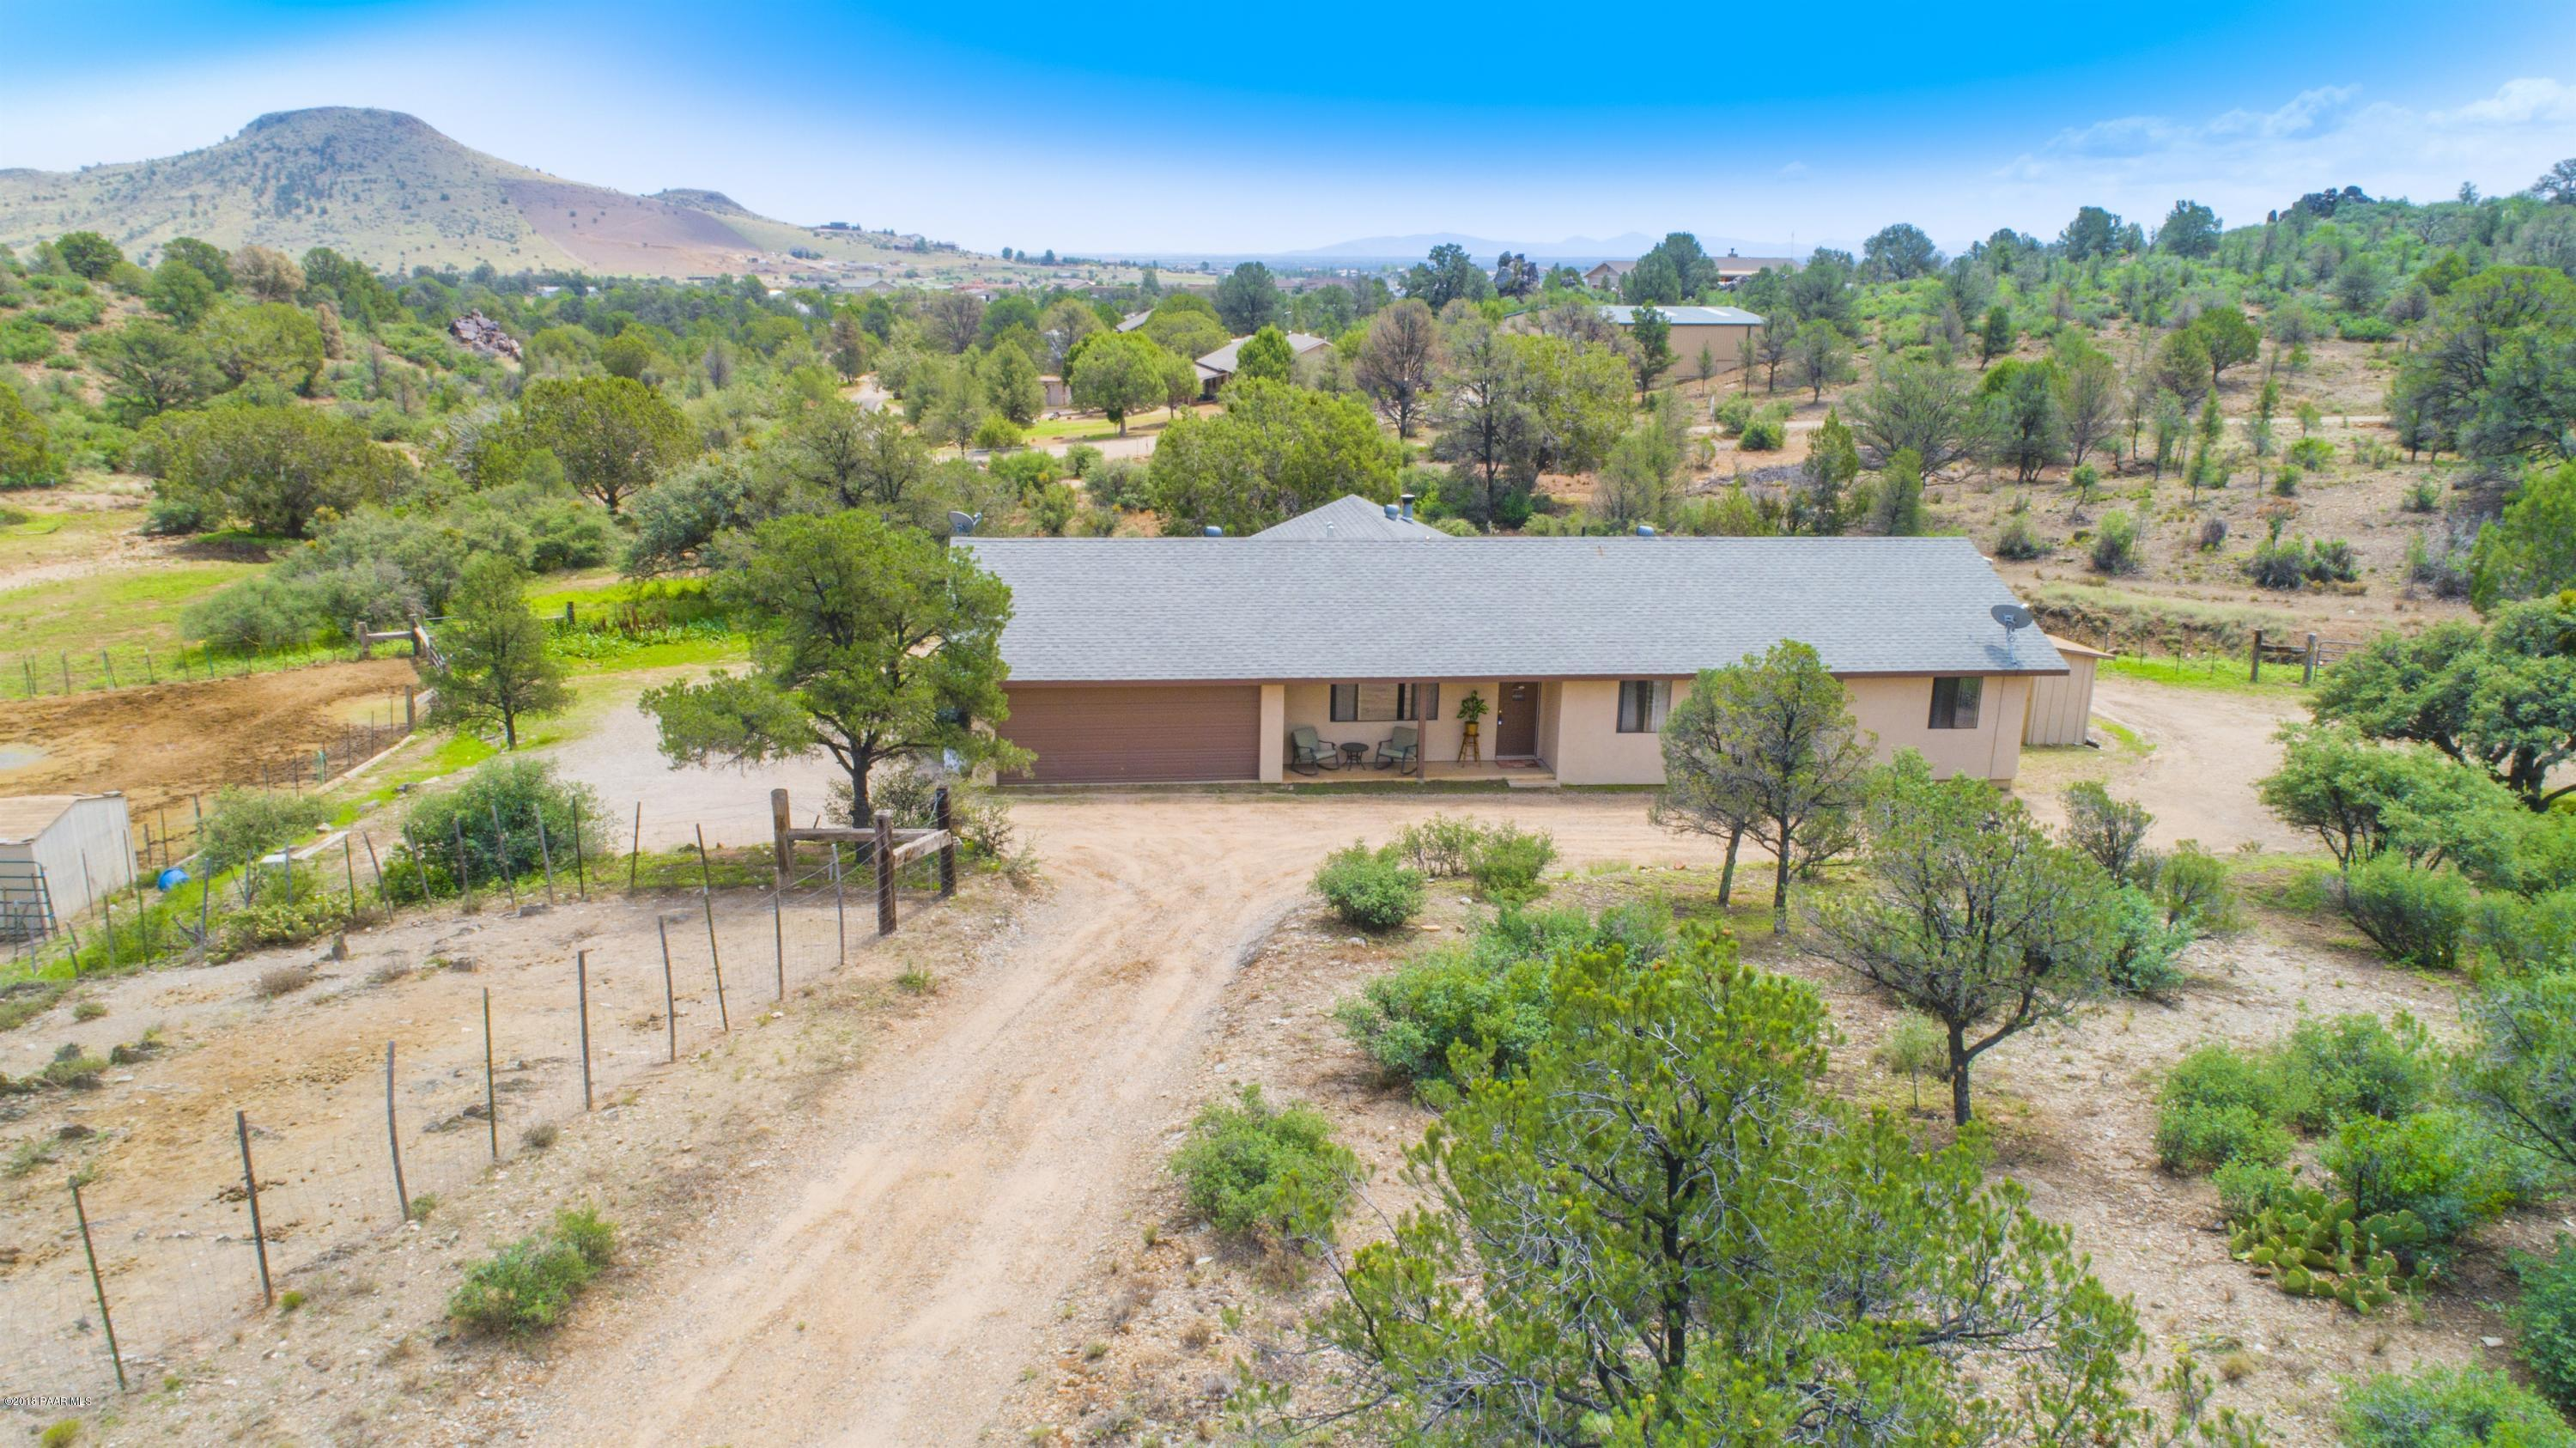 4960 Dome Road Prescott, AZ 86305 - MLS #: 1012157